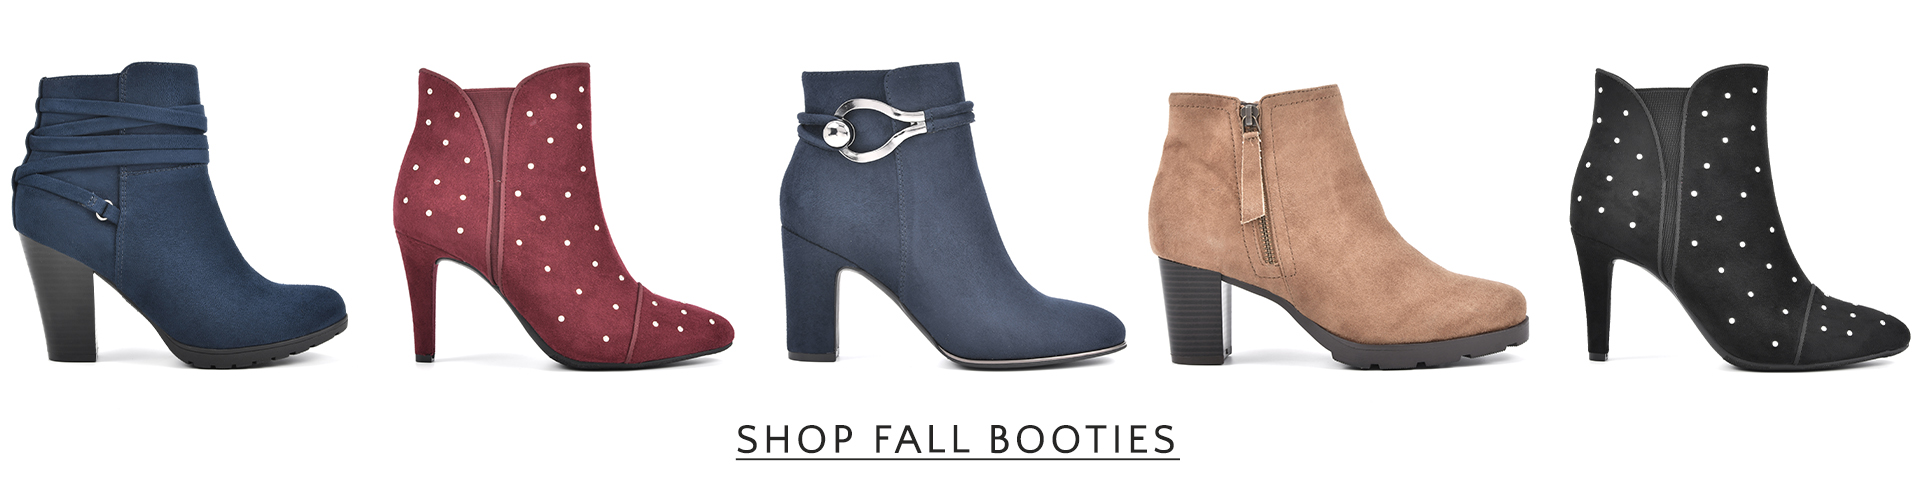 Shop Fall Booties